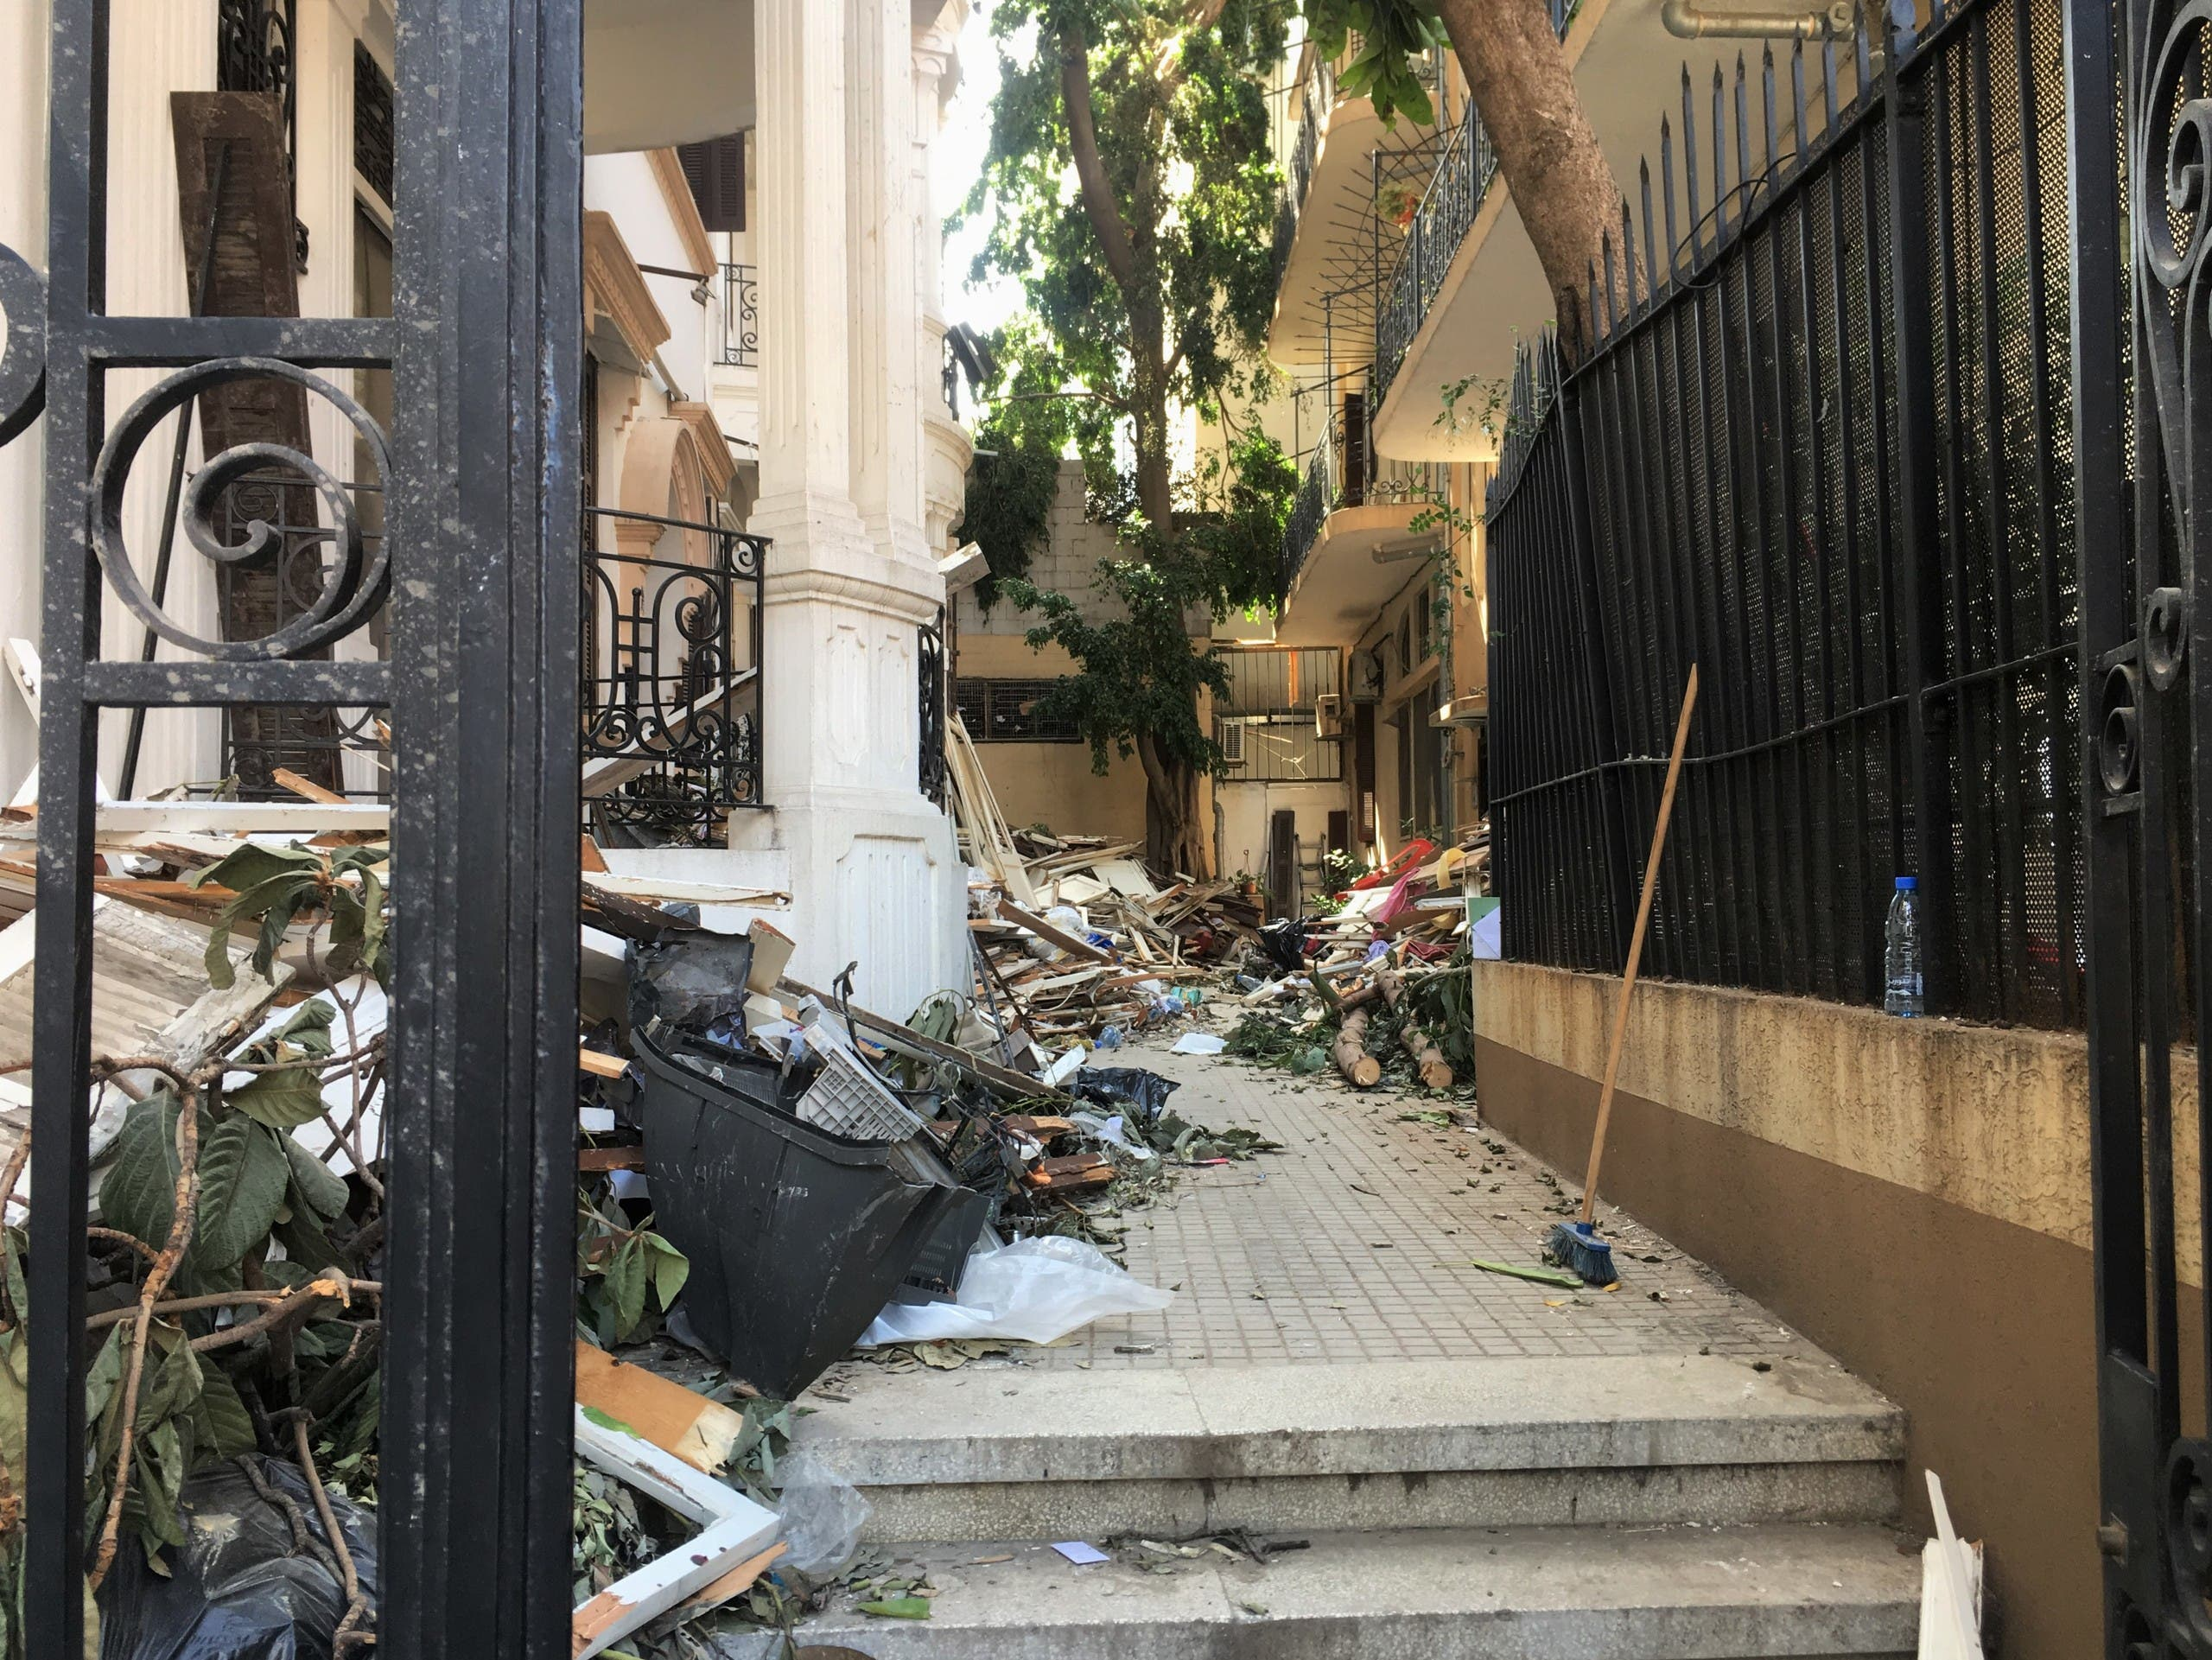 A view of the entrance to the building housing Art on 56th. Debris covers the walkway. (Maghie Ghali)